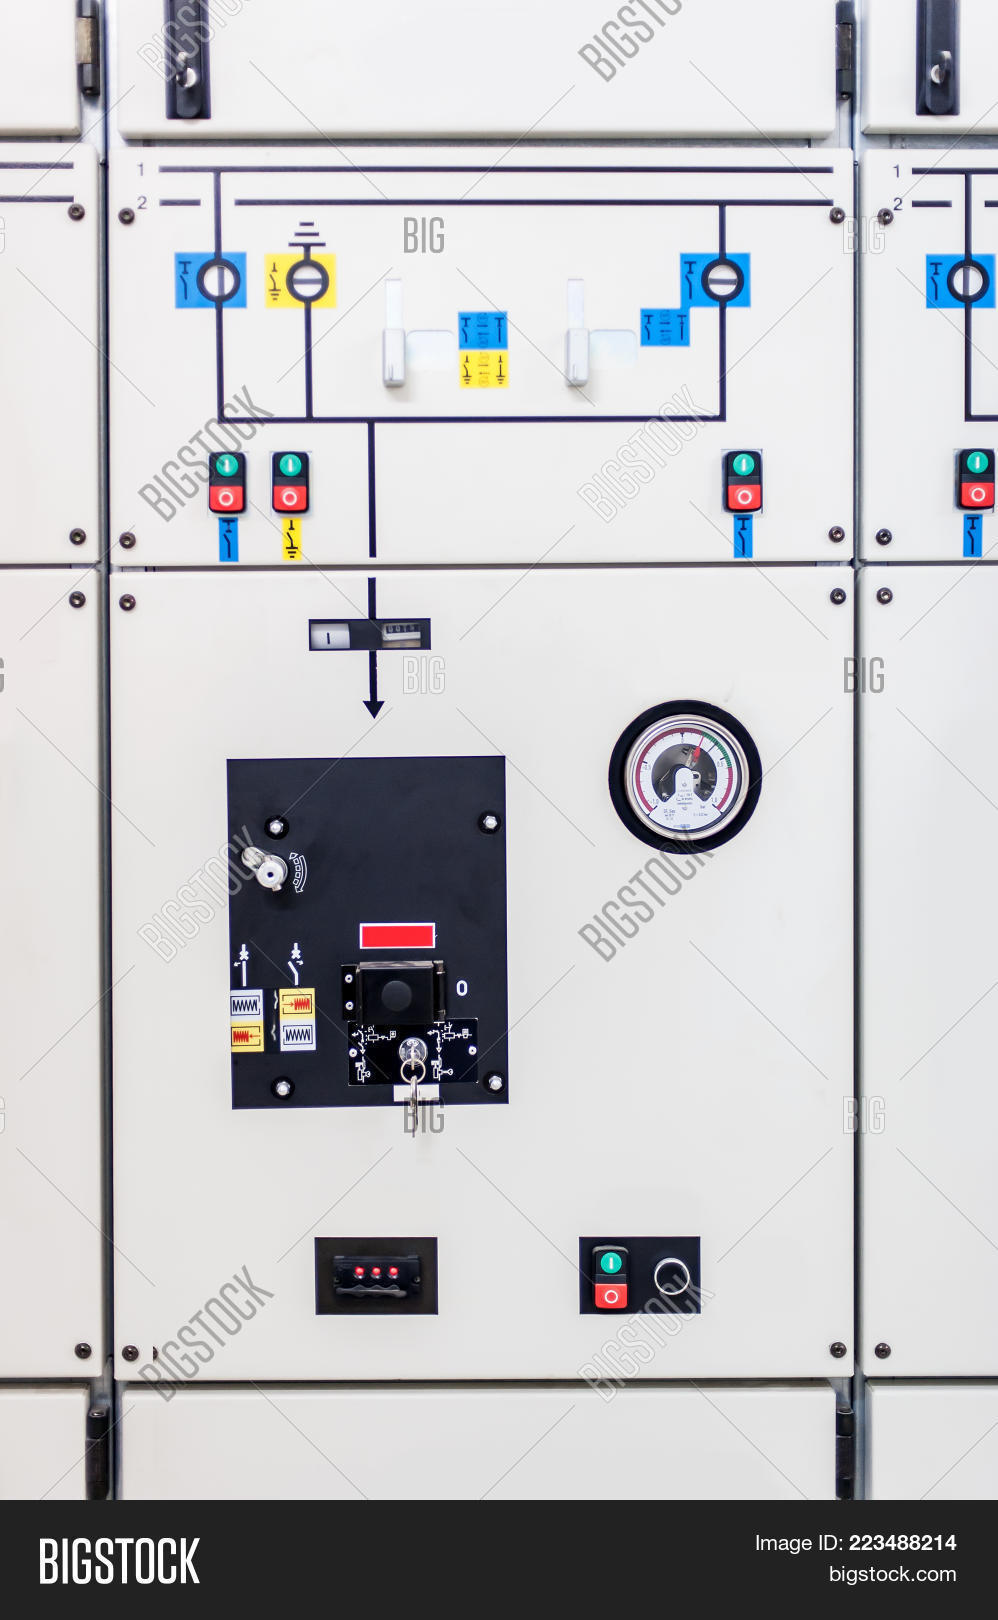 Relay Protection Image & Photo (Free Trial) | Bigstock